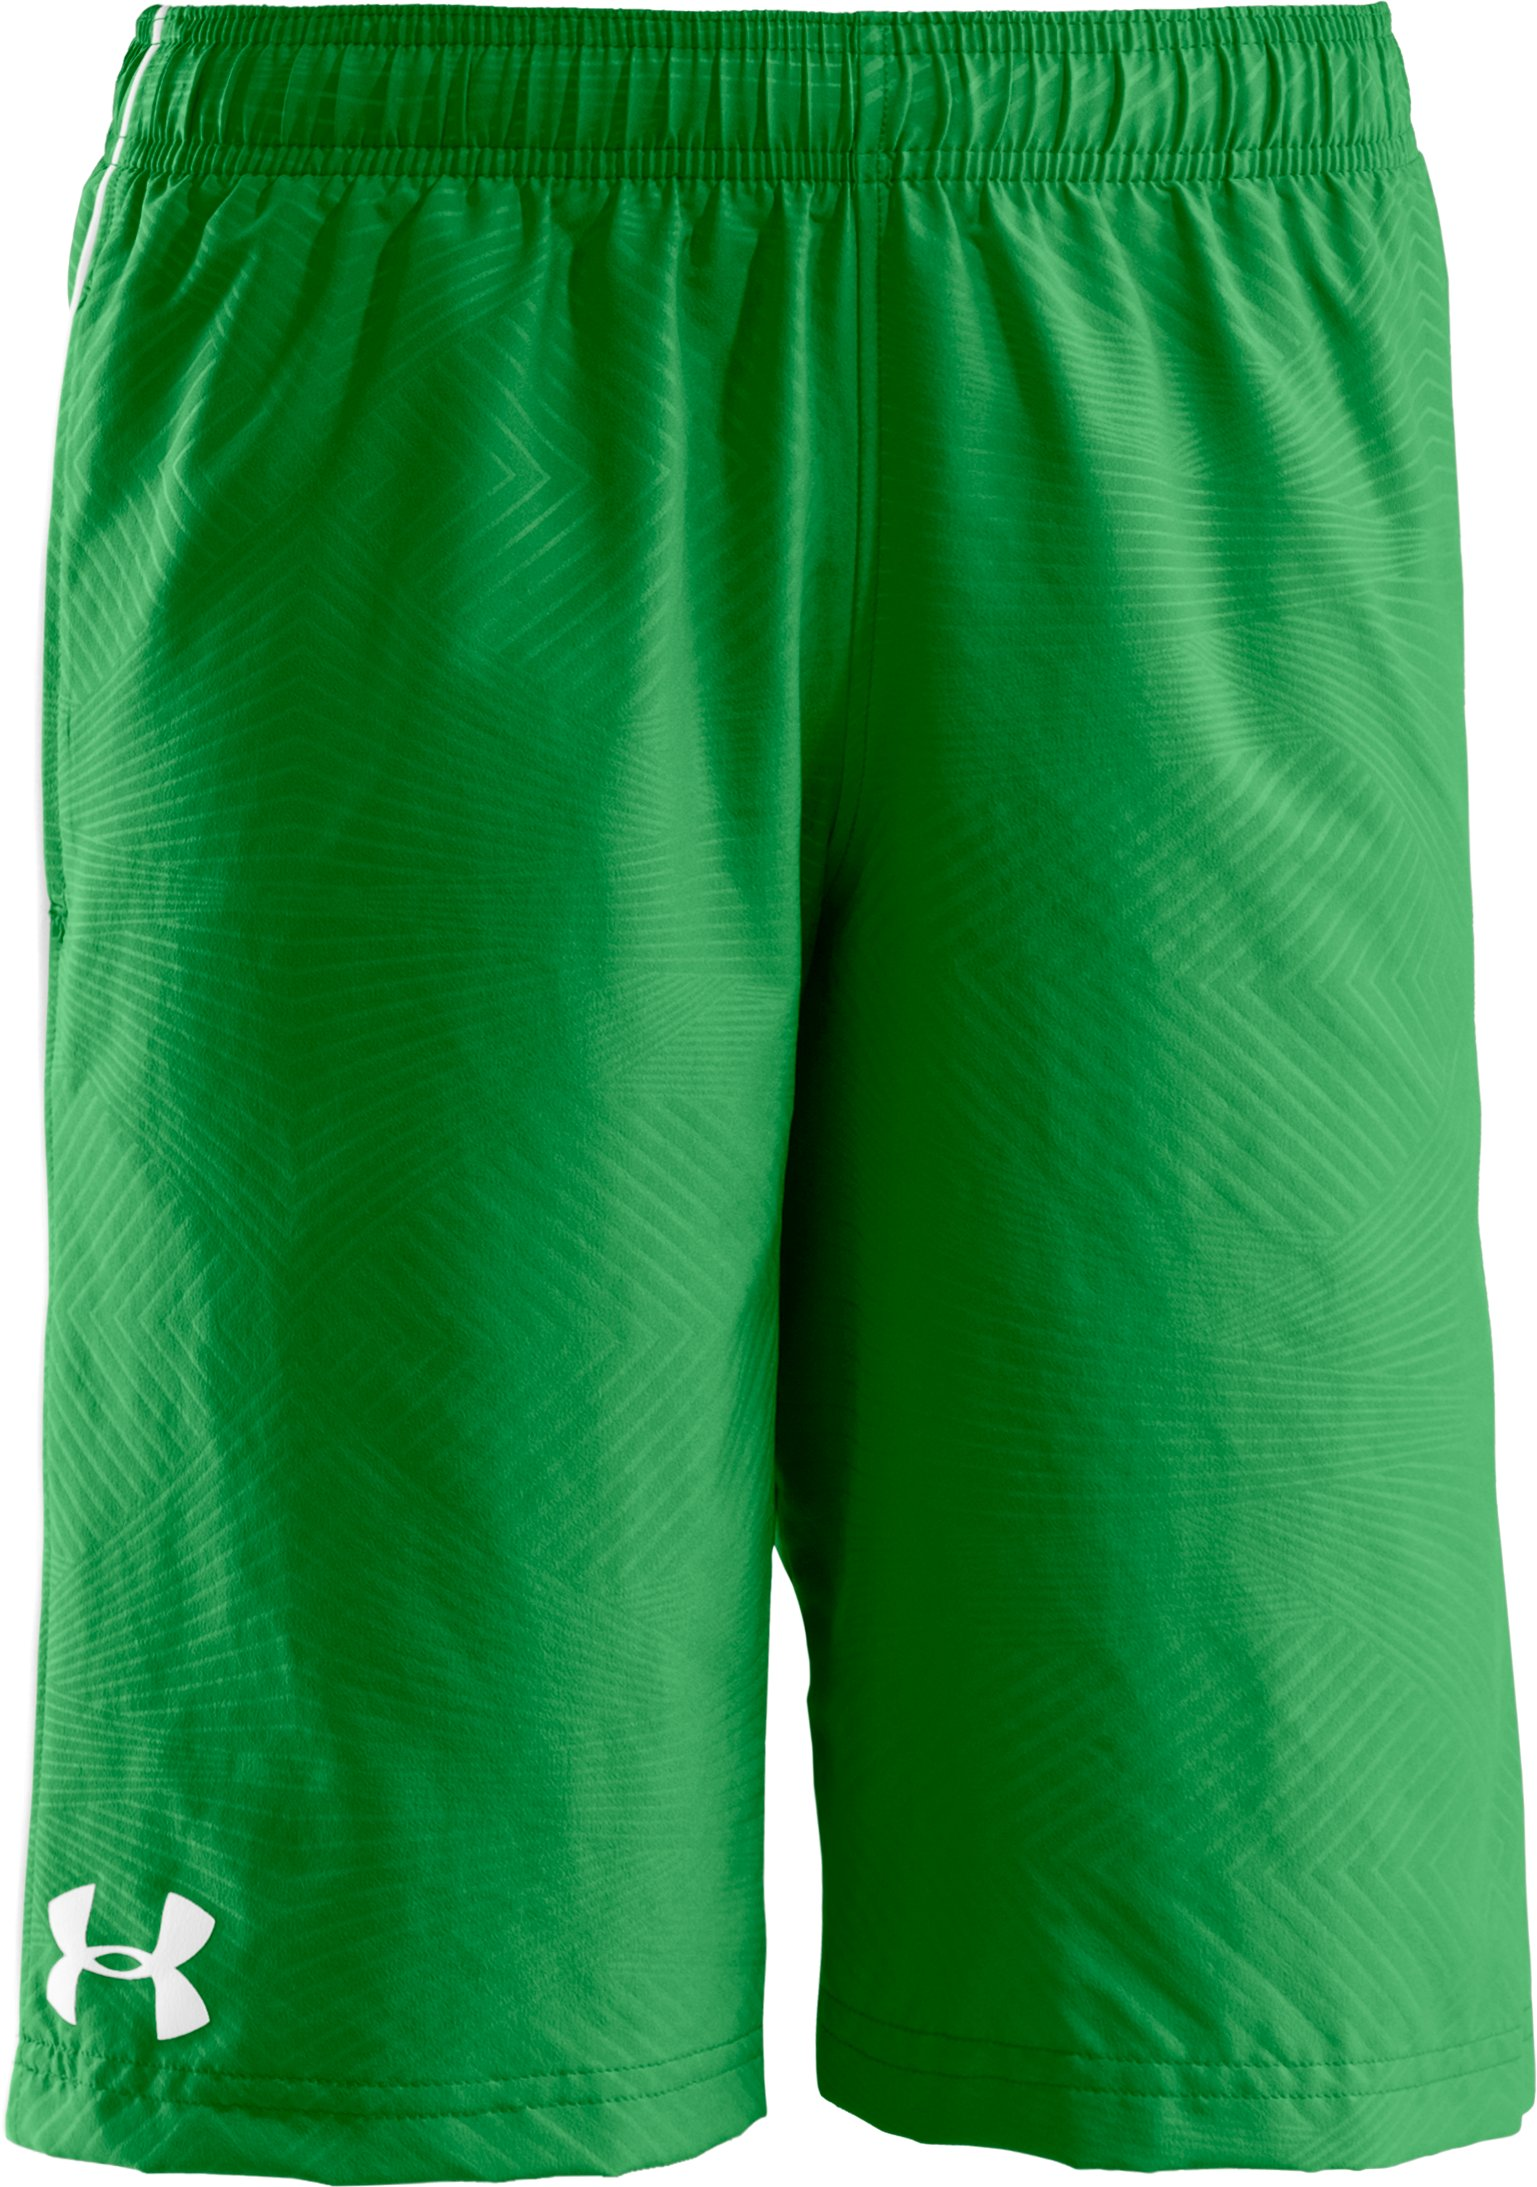 Boys' UA Ripping Shorts, Feisty